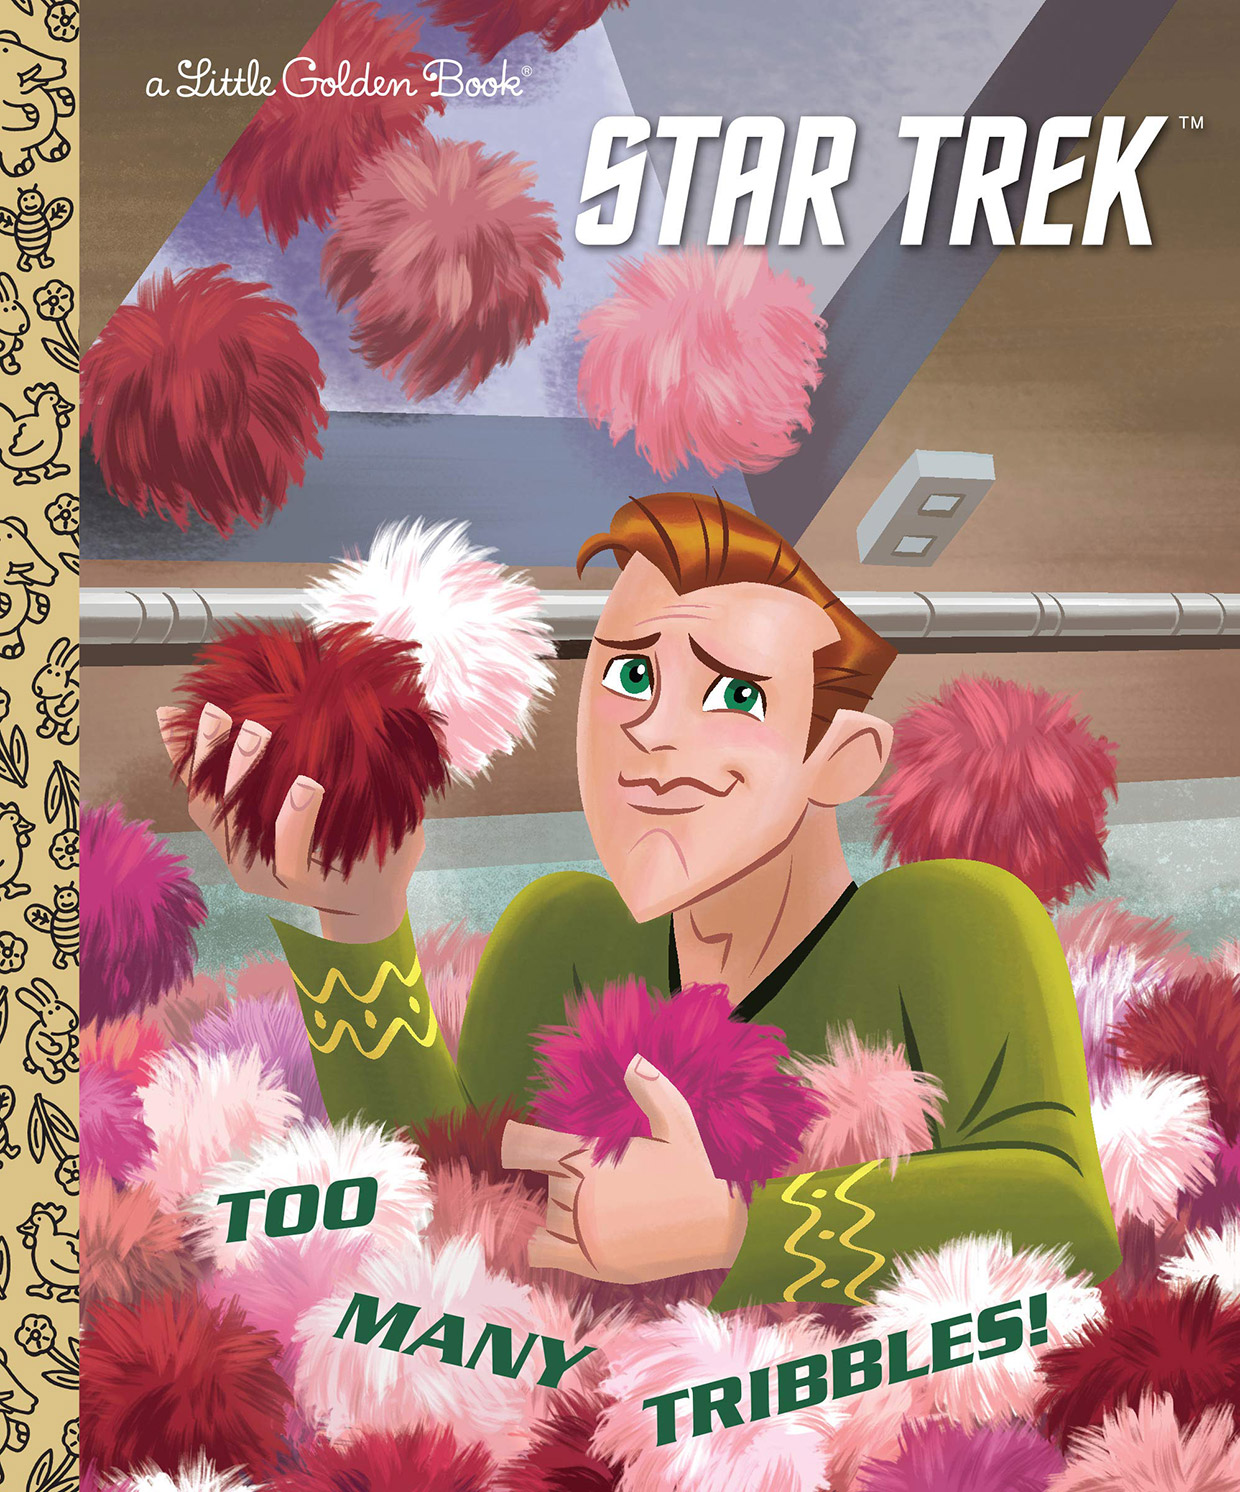 Star Trek Gets Trouble With Quot Too Many Tribbles Quot Little